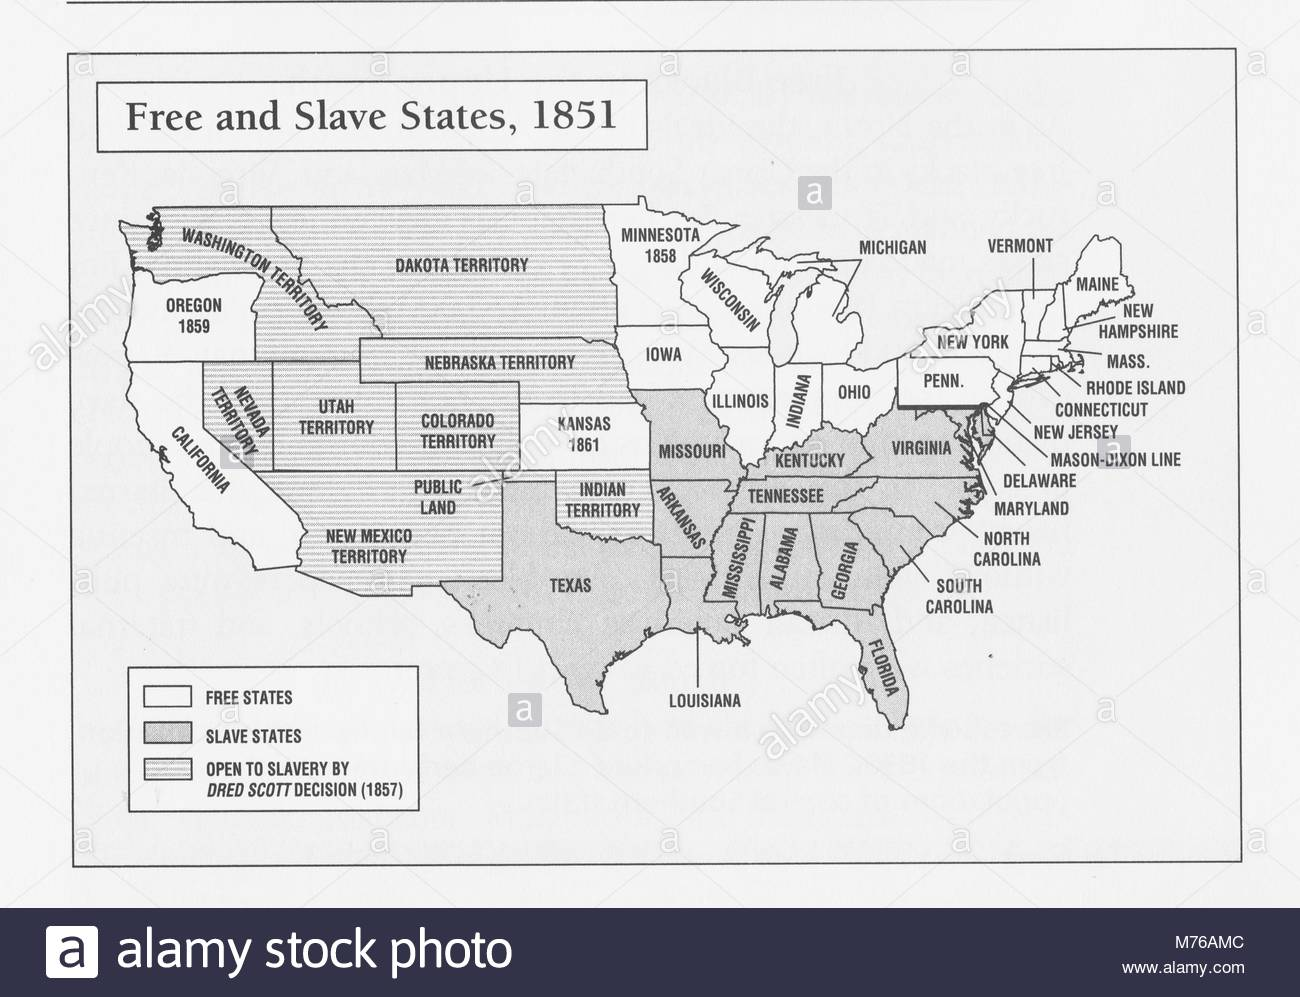 a map of free and slave states in the united states in 1851 by the